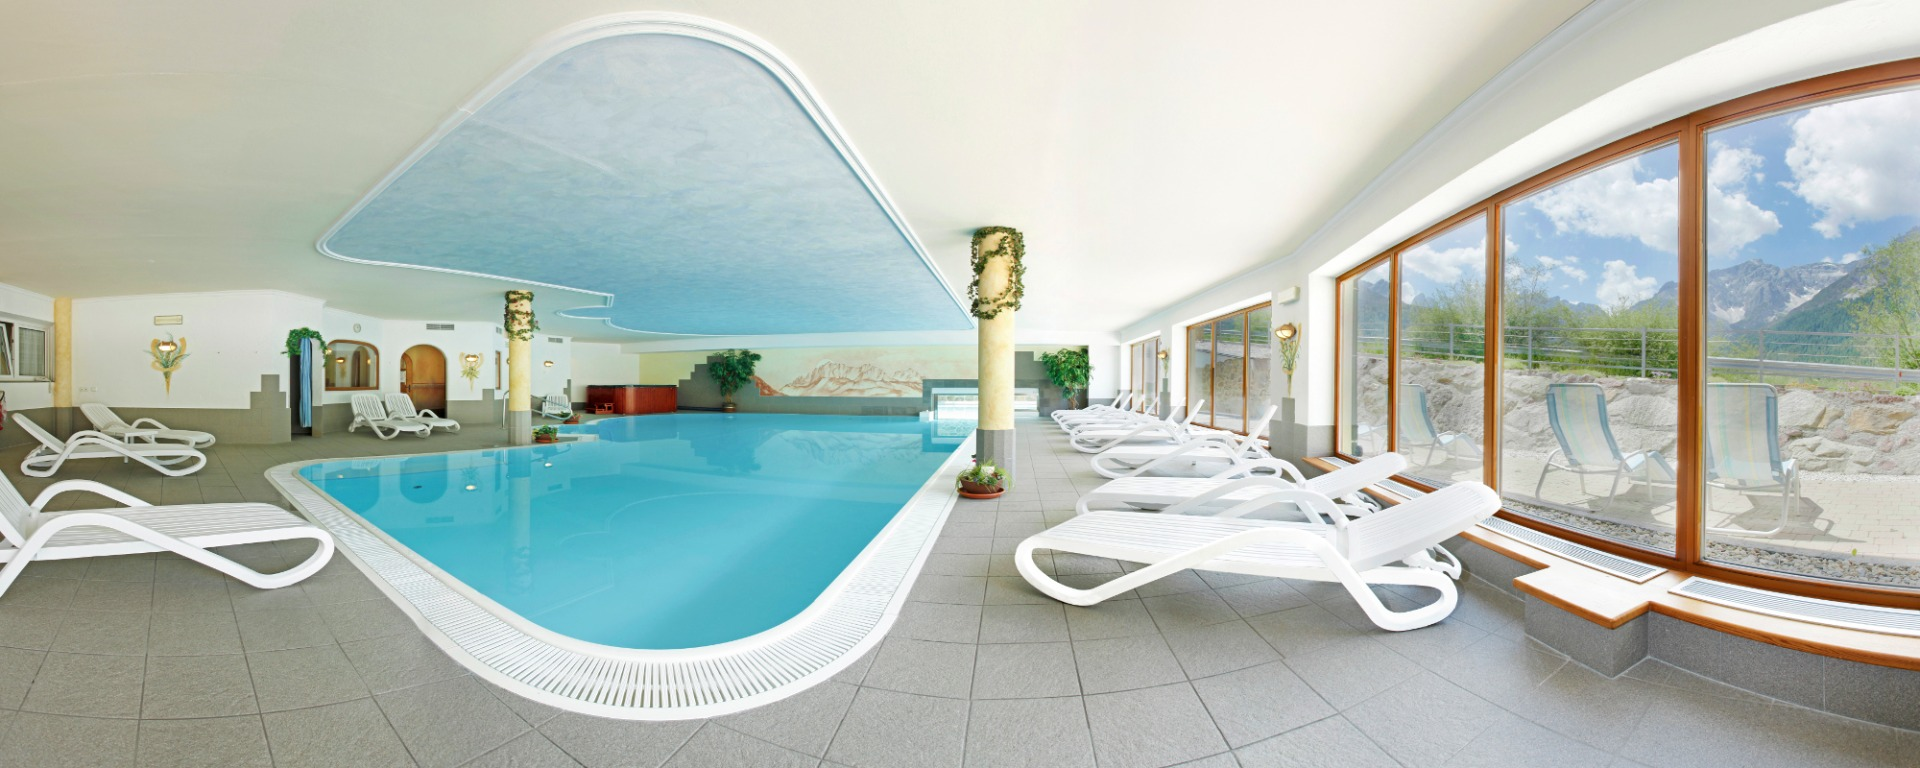 Panorama indoorpool at the Biohotel Alpi Sexten / Sesto